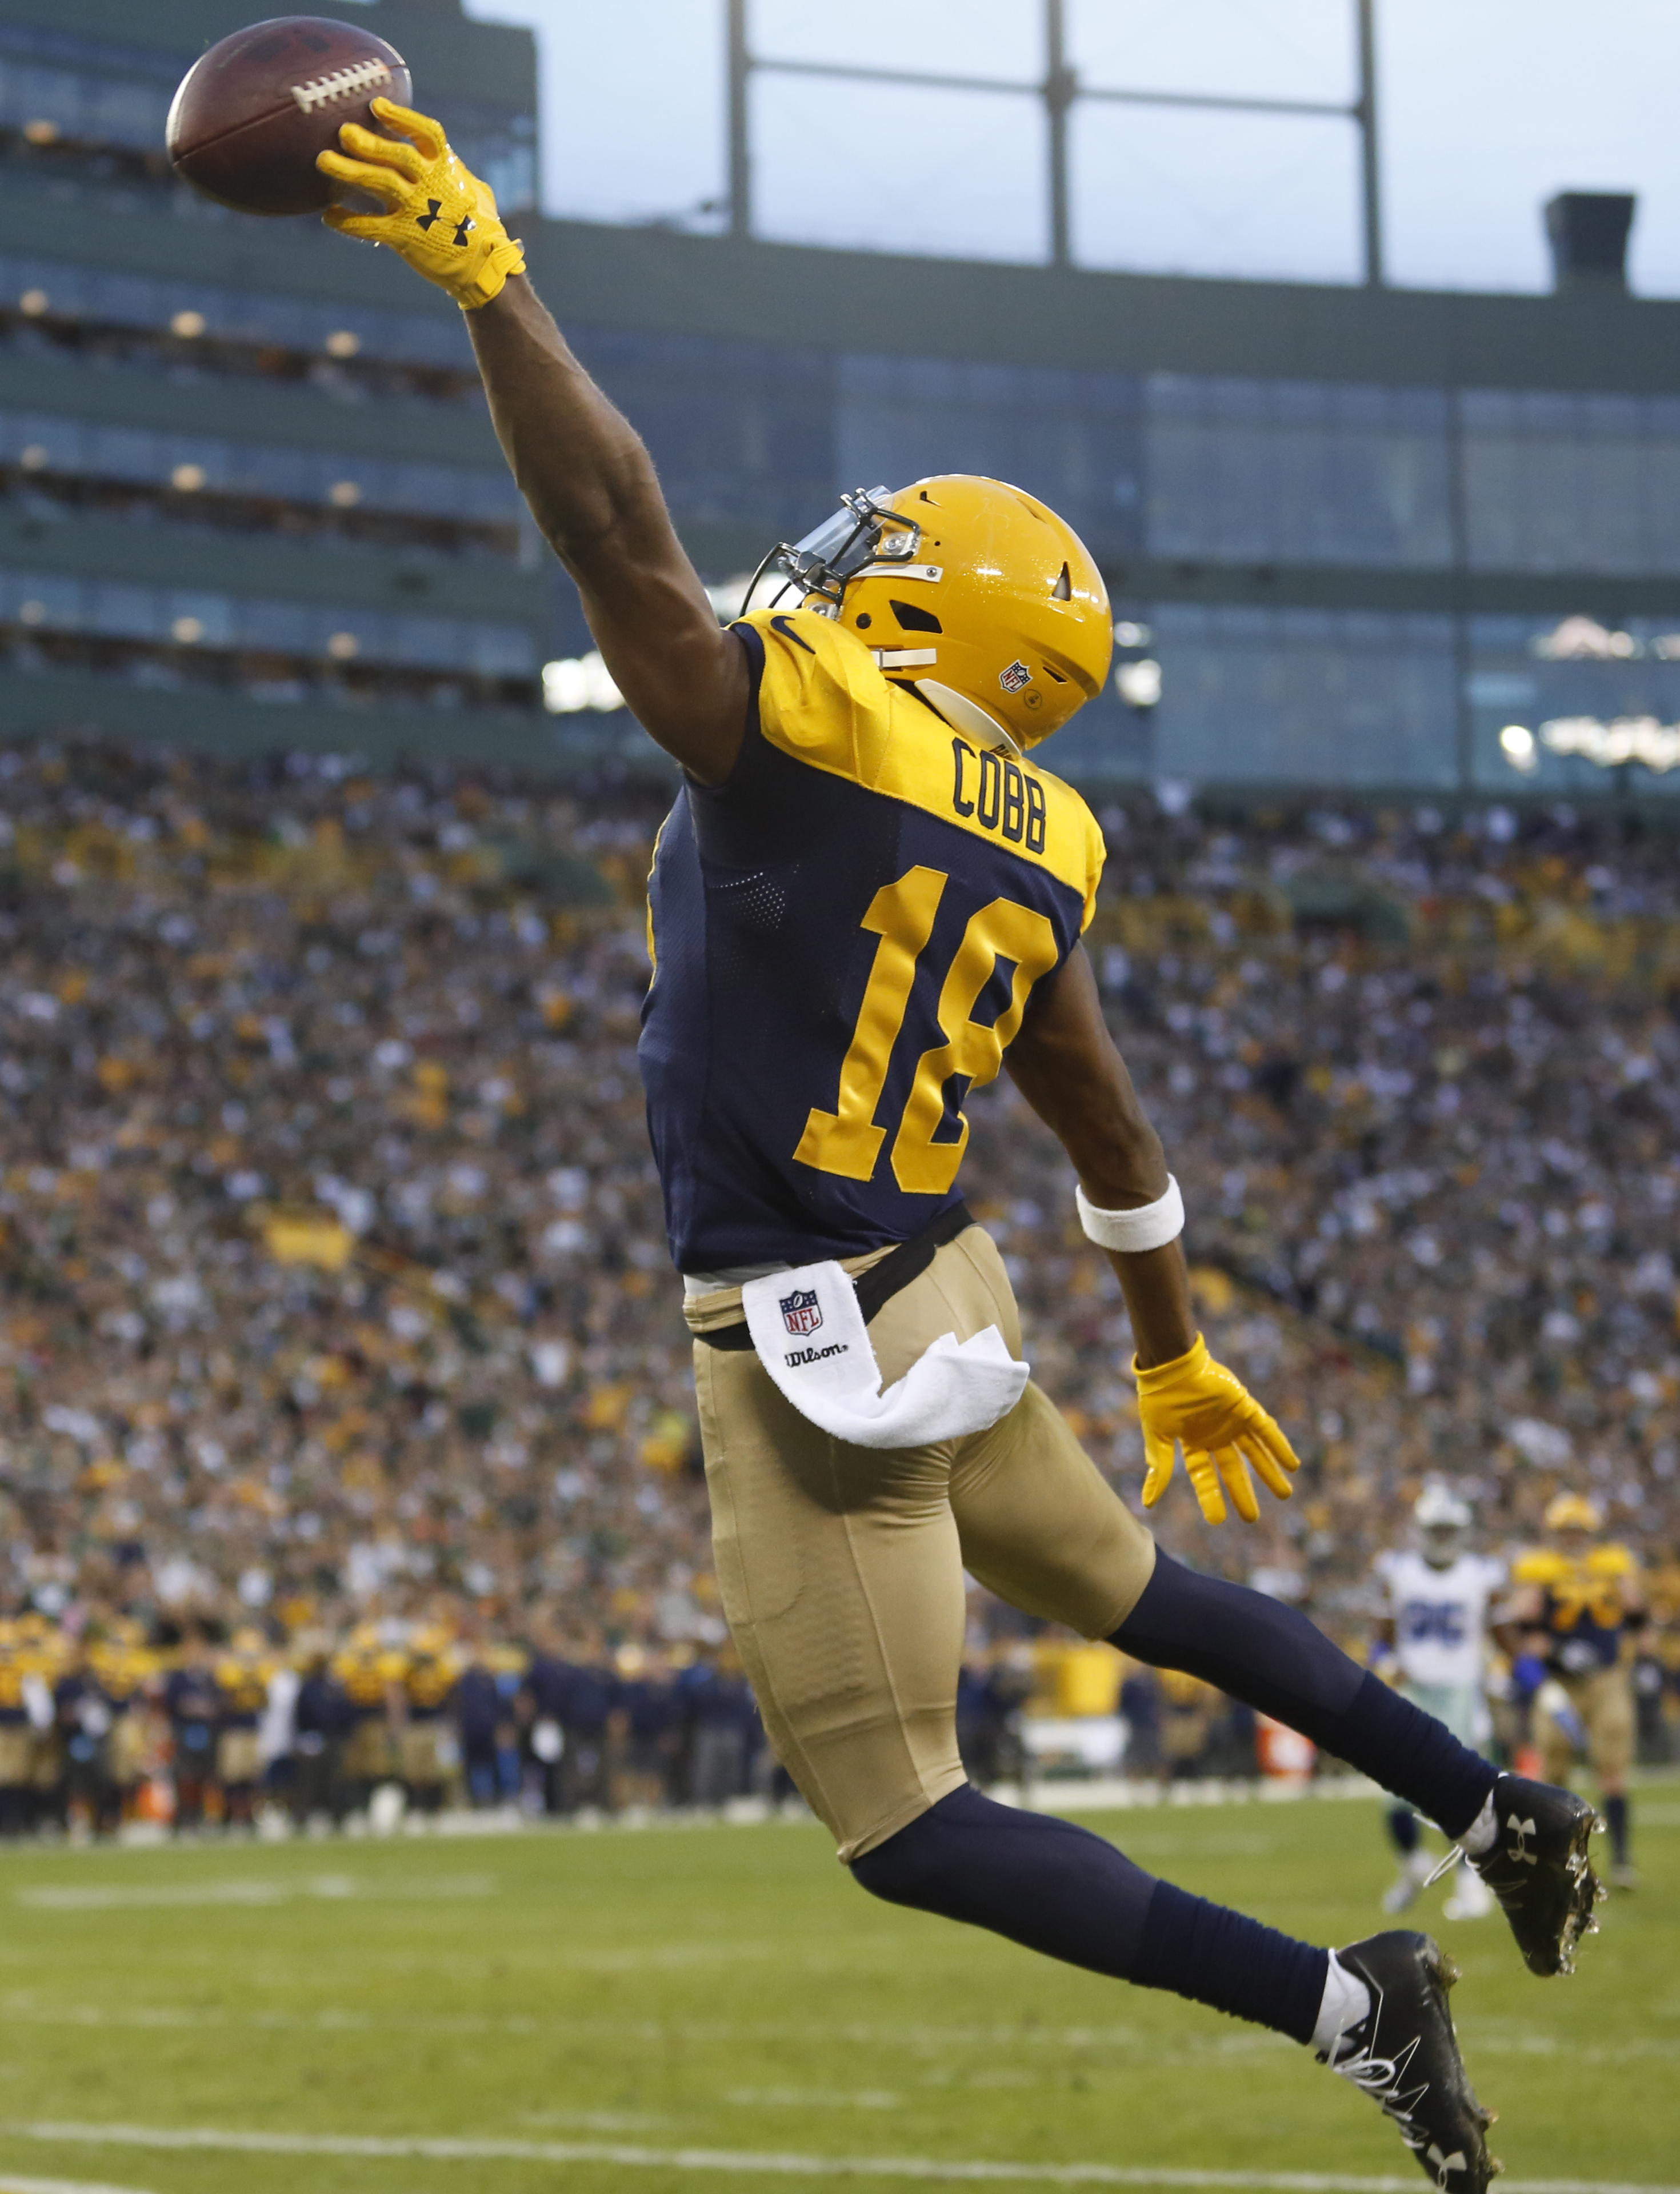 Green Bay Packers' Randall Cobb can't catch a pass during the second half of an NFL football game against the Dallas Cowboys Sunday, Oct. 16, 2016, in Green Bay, Wis. (AP Photo/Matt Ludtke)